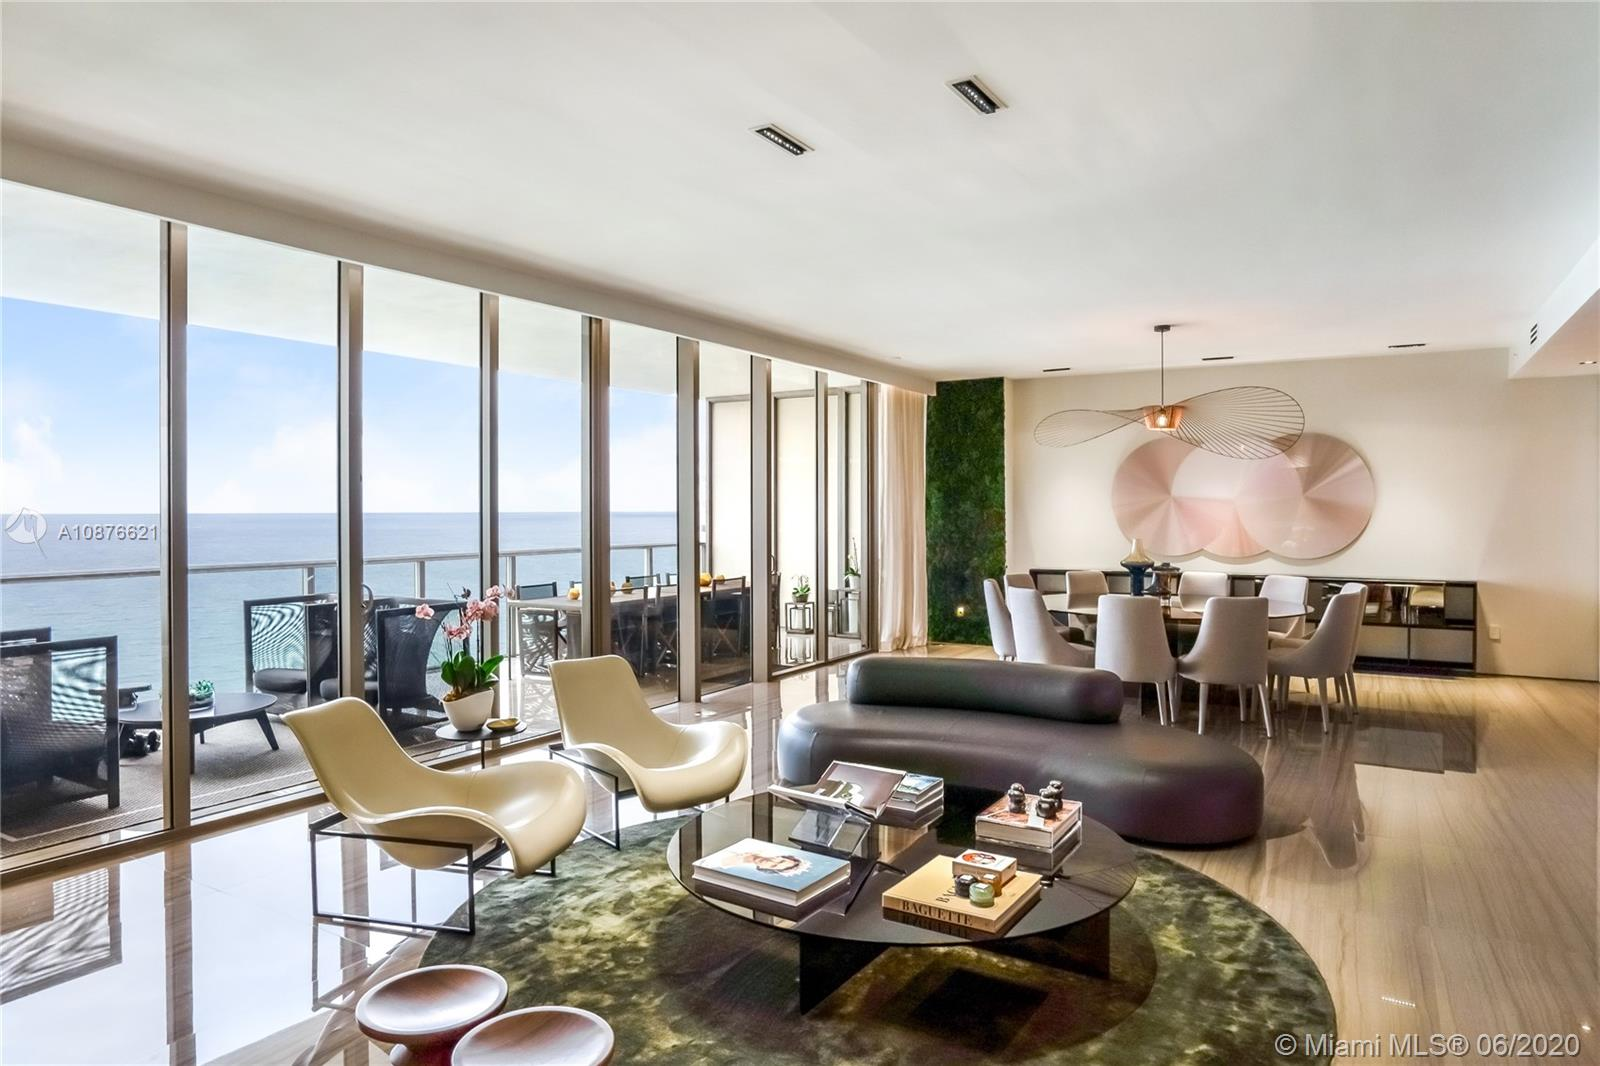 9701 Collins Ave, Unit #1903S Luxury Real Estate